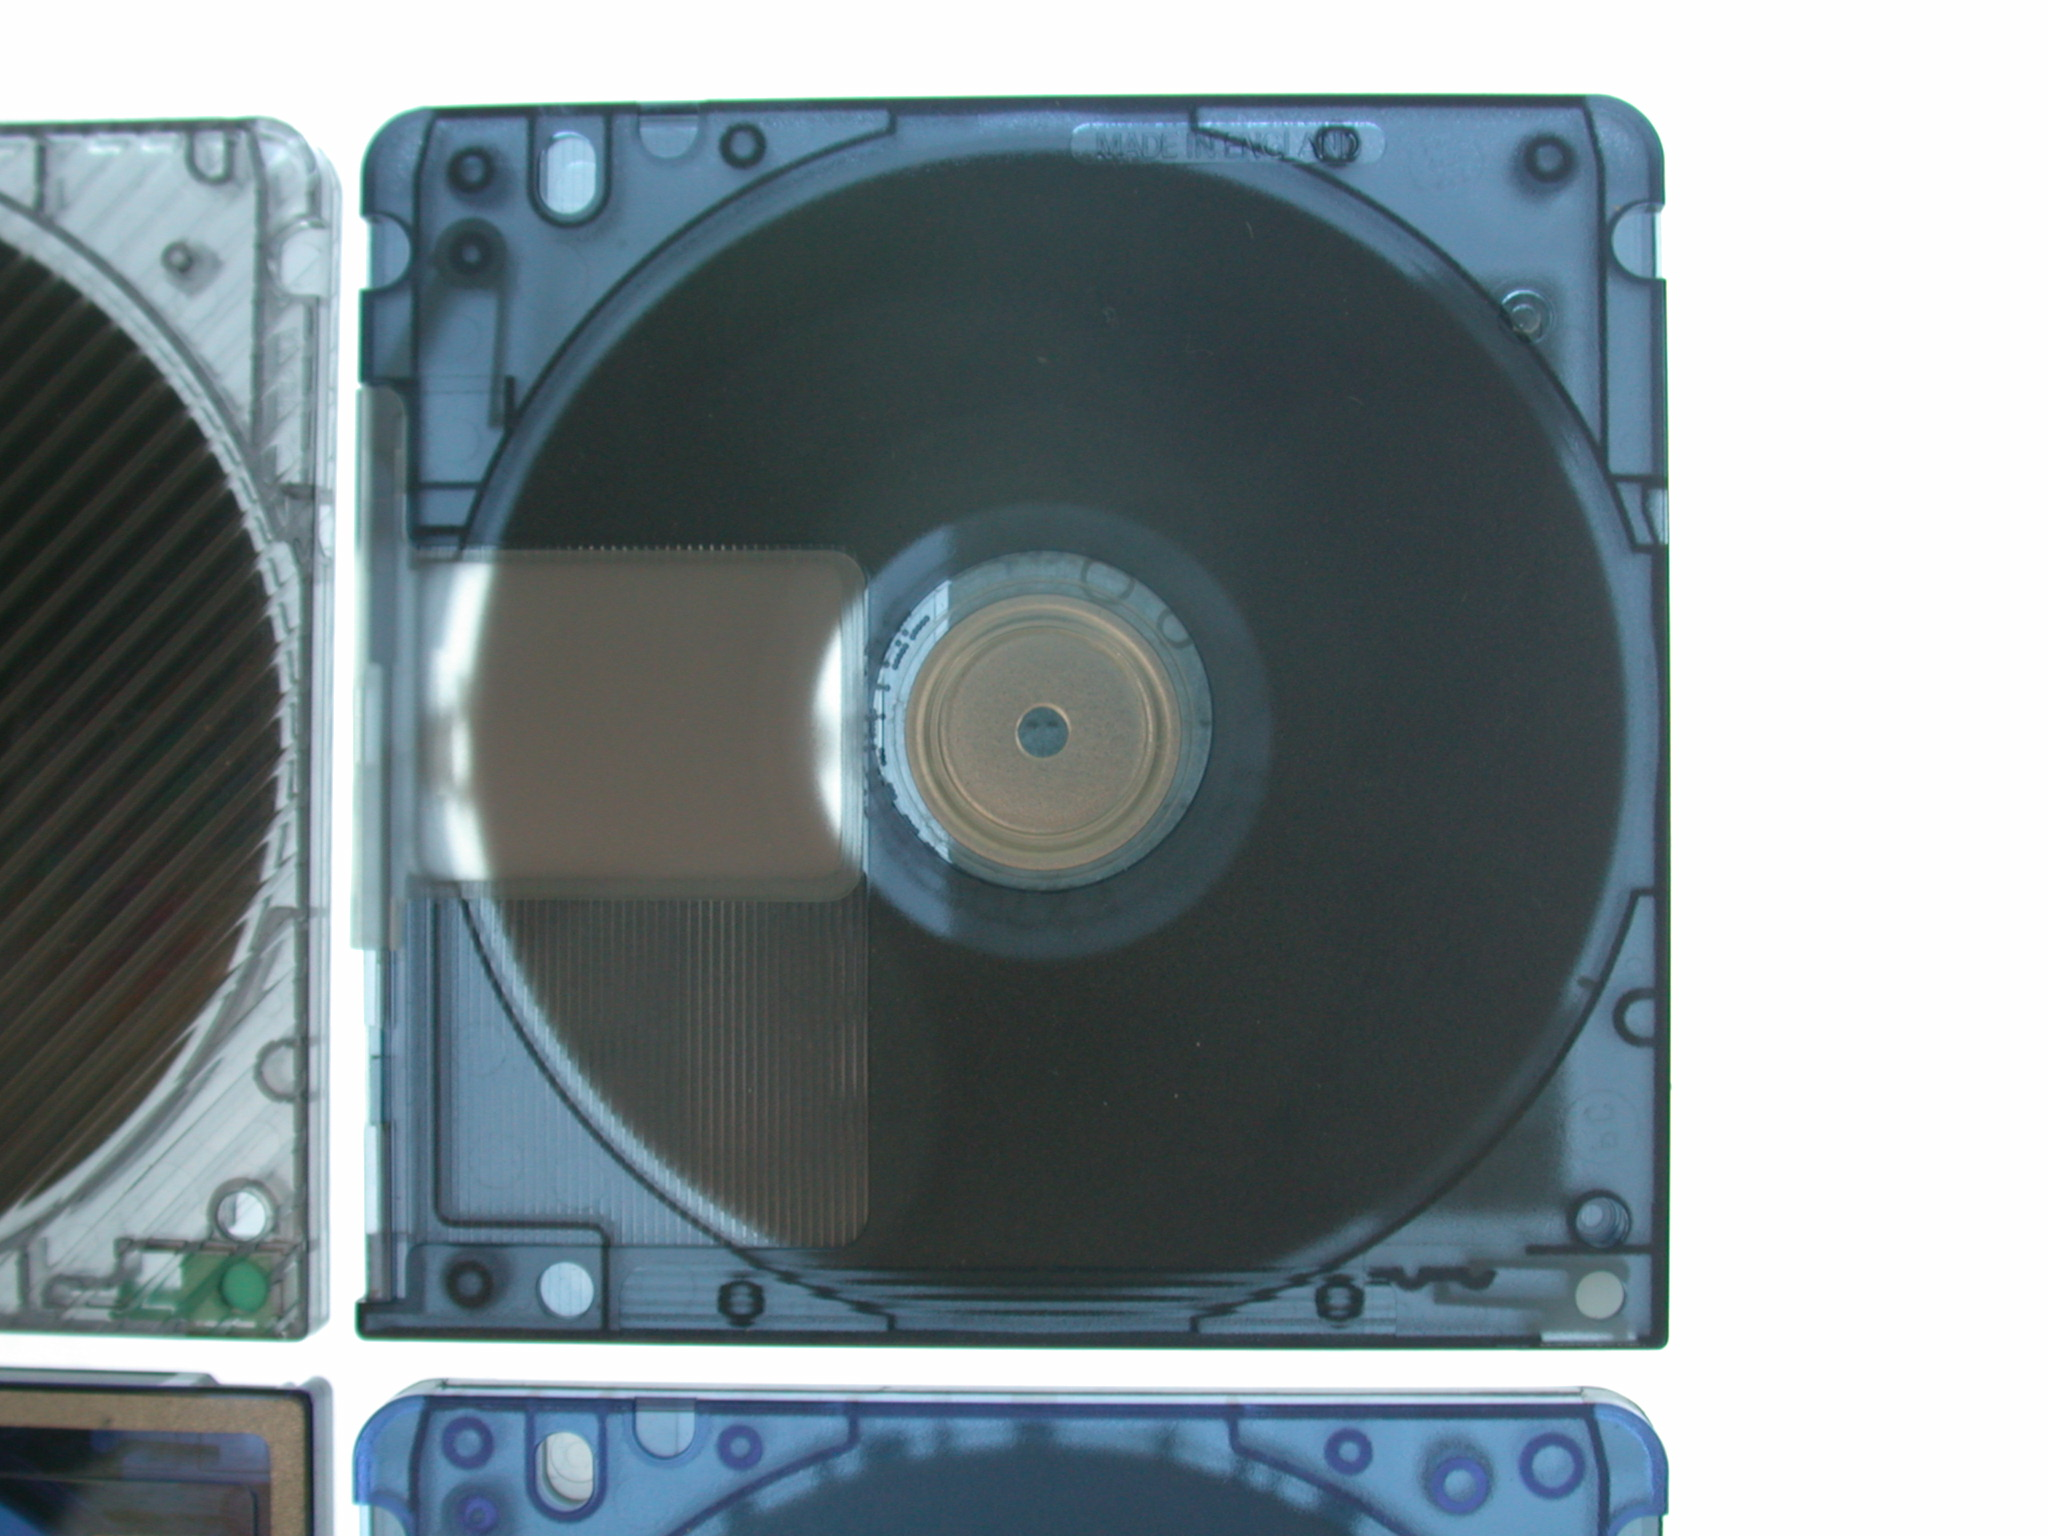 objects minidisc data sony datastorage square music plastic circle